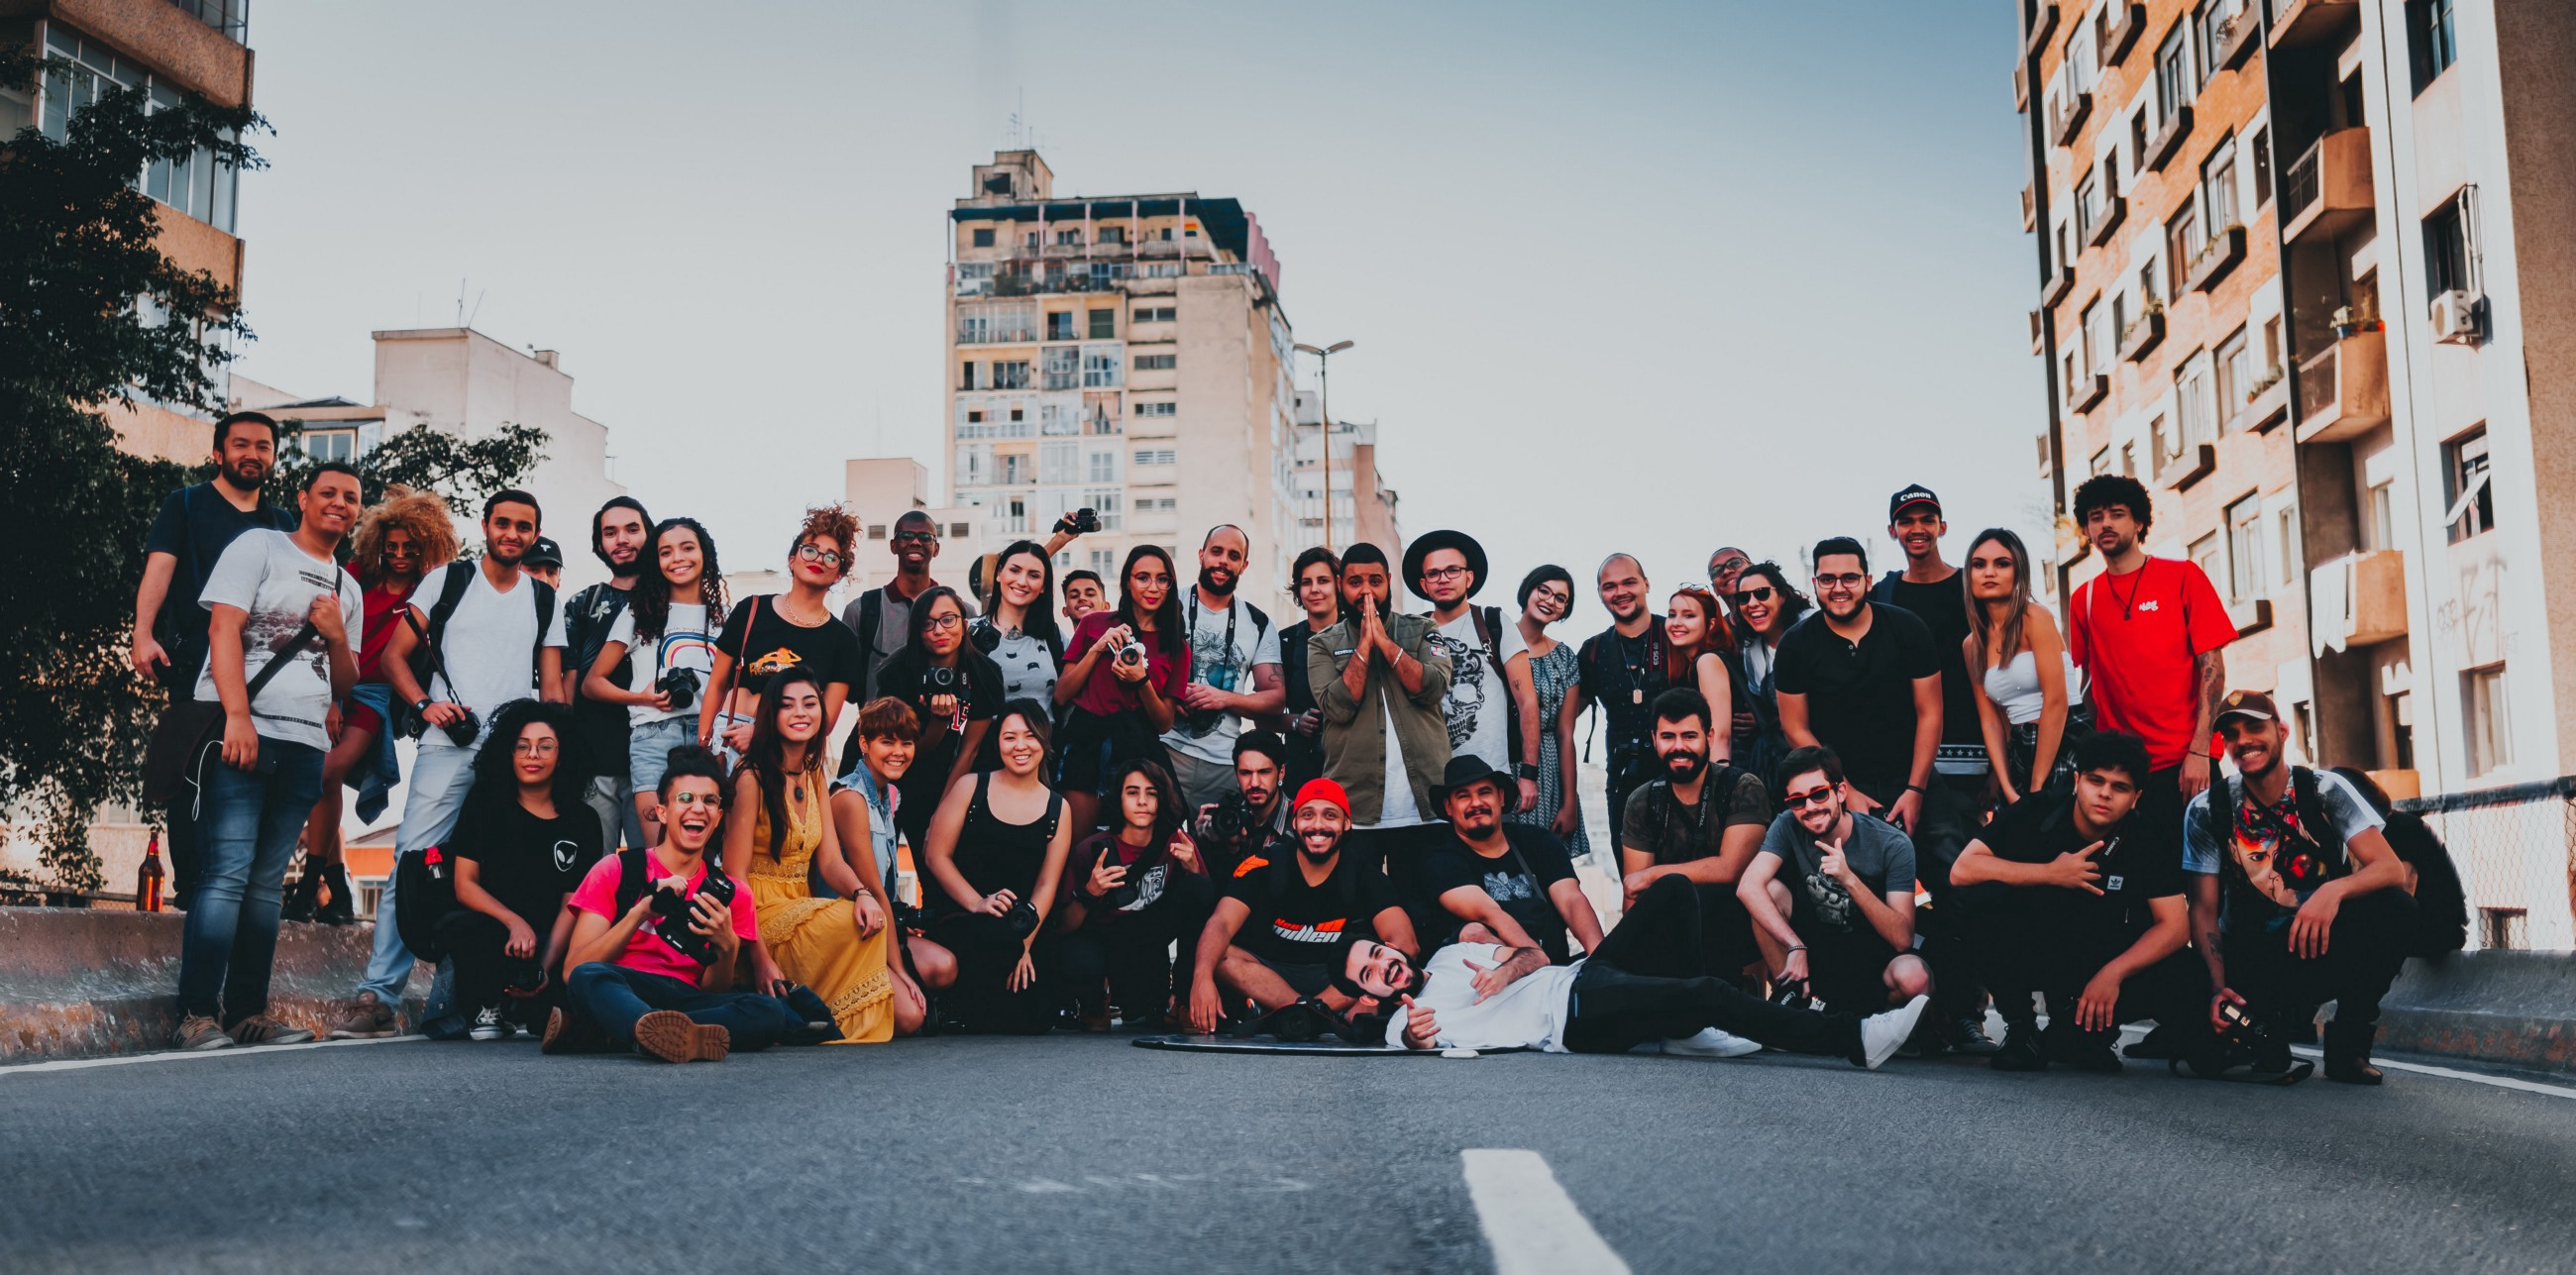 A group of diverse people posing for a photo